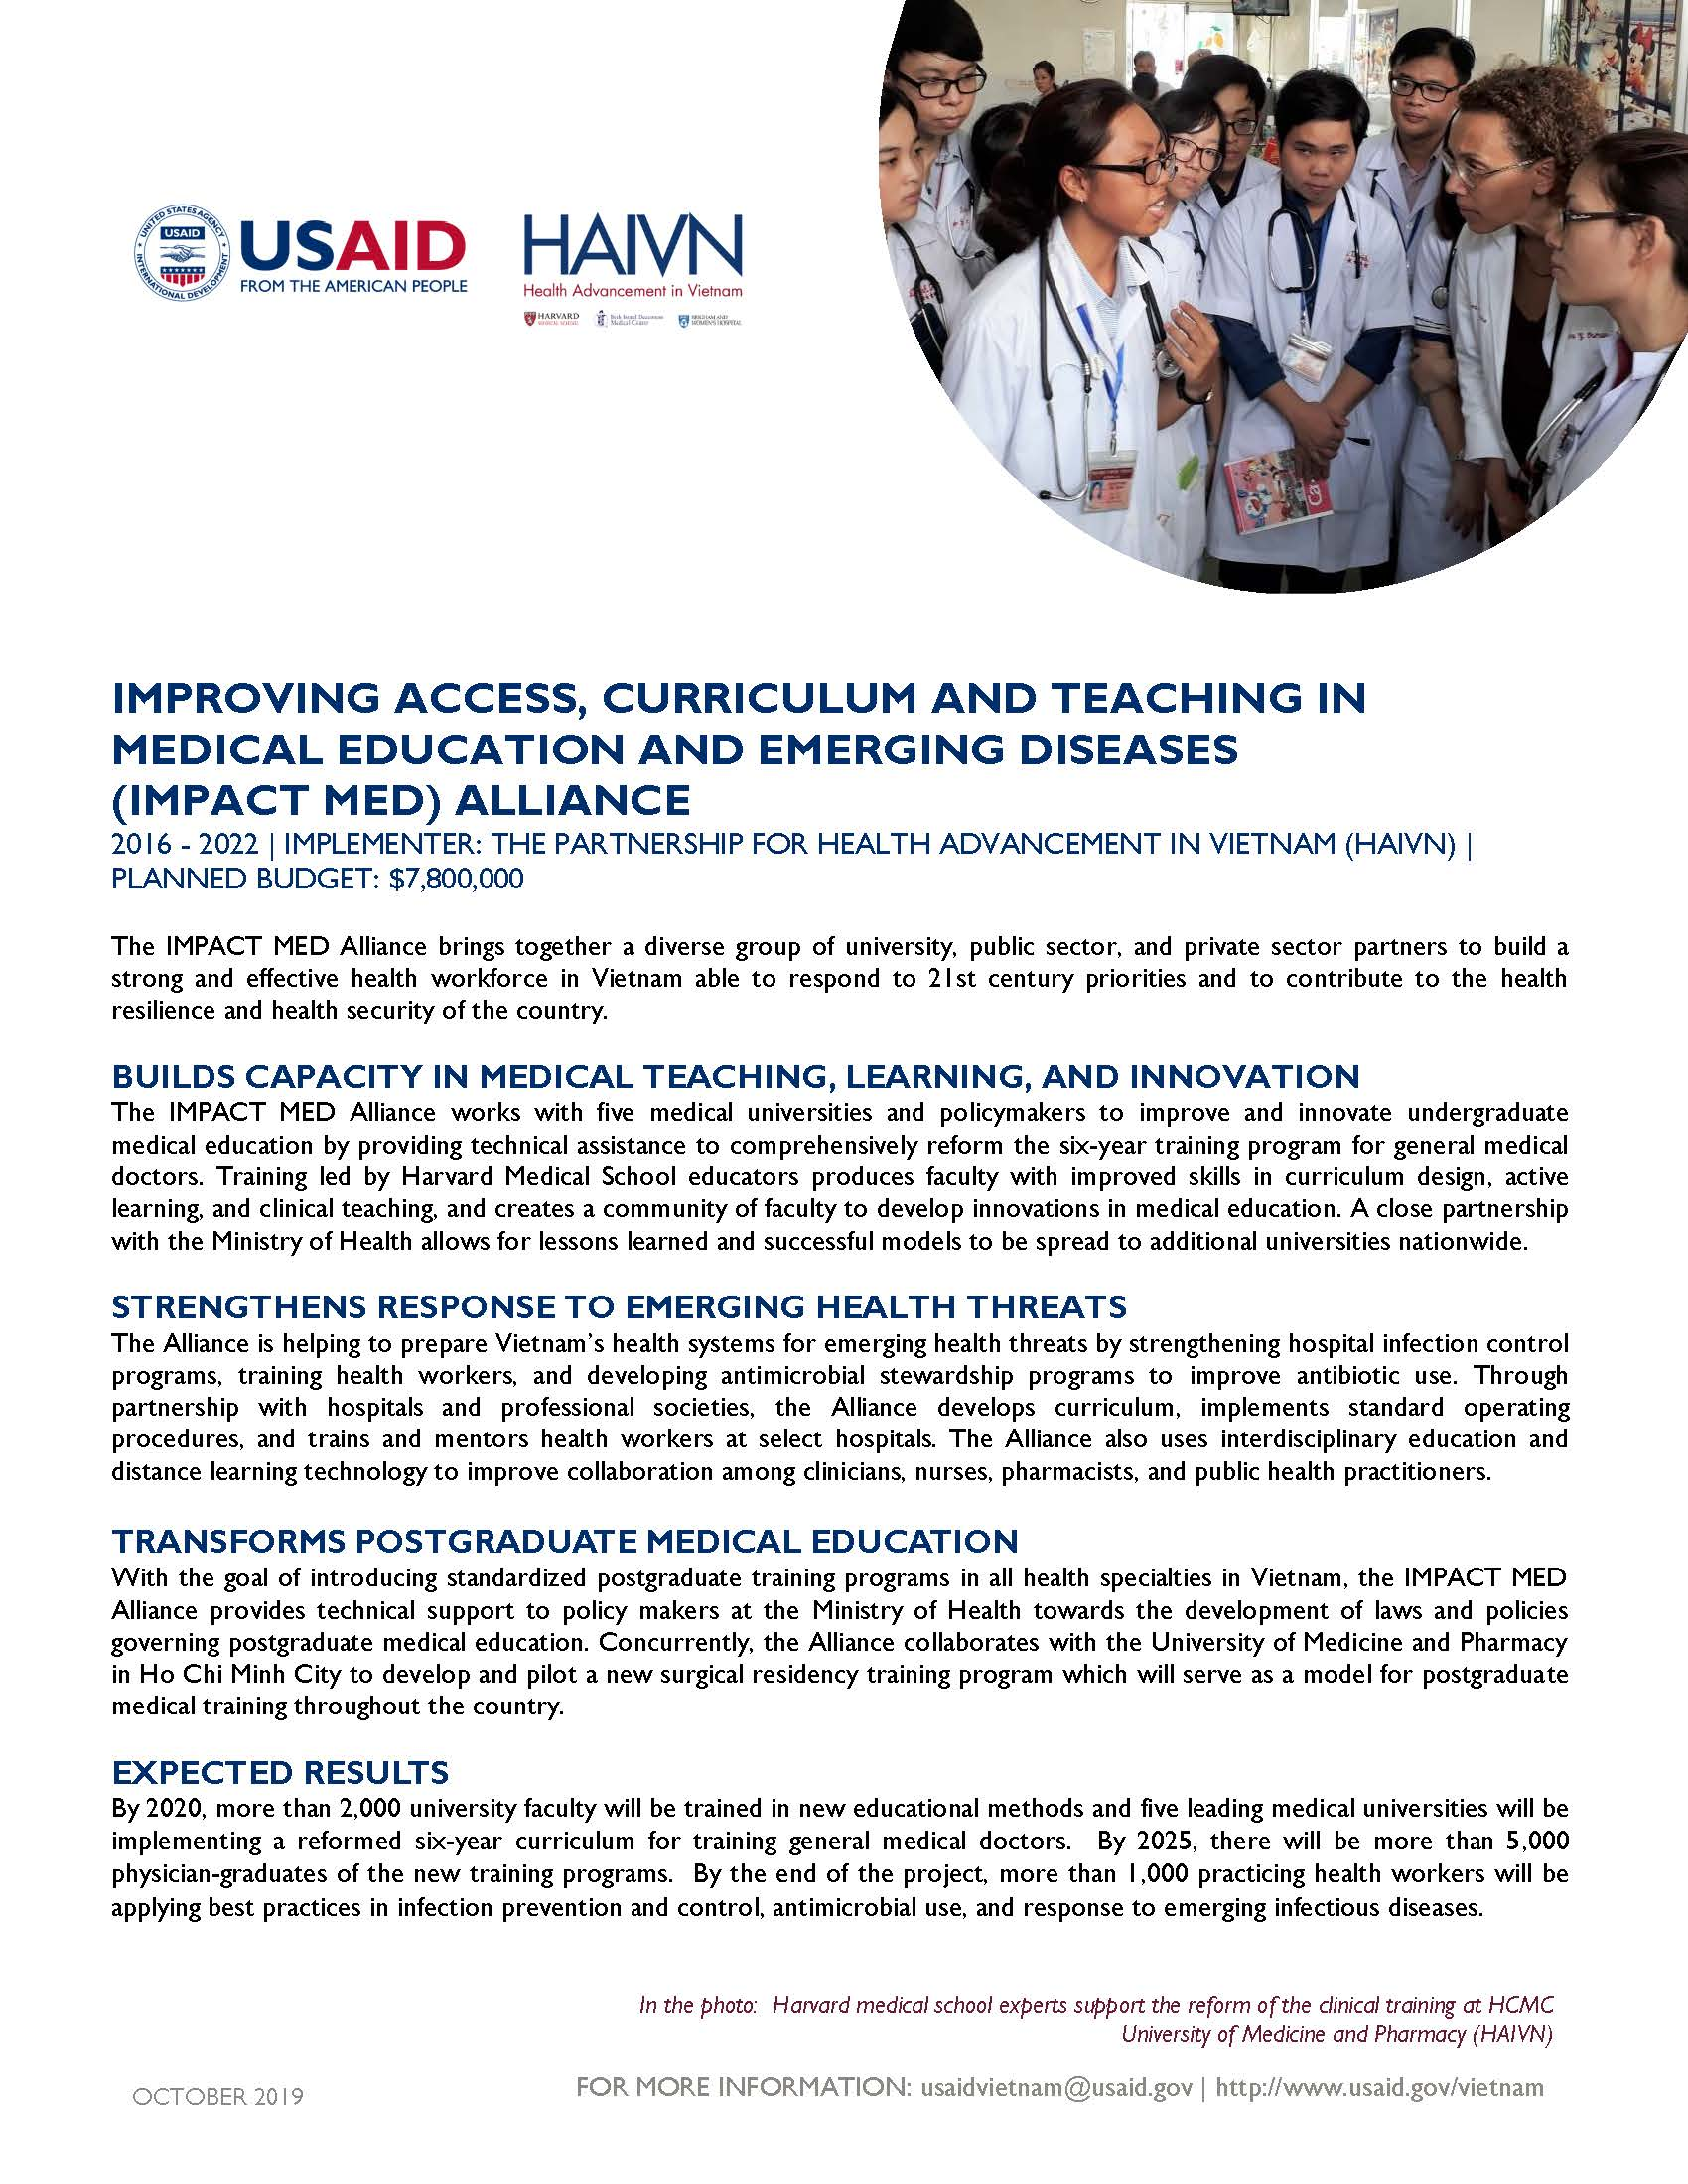 Fact Sheet: Improving Access, Curriculum and Teaching in Medical Education and Emerging Diseases (IMPACT MED) Alliance